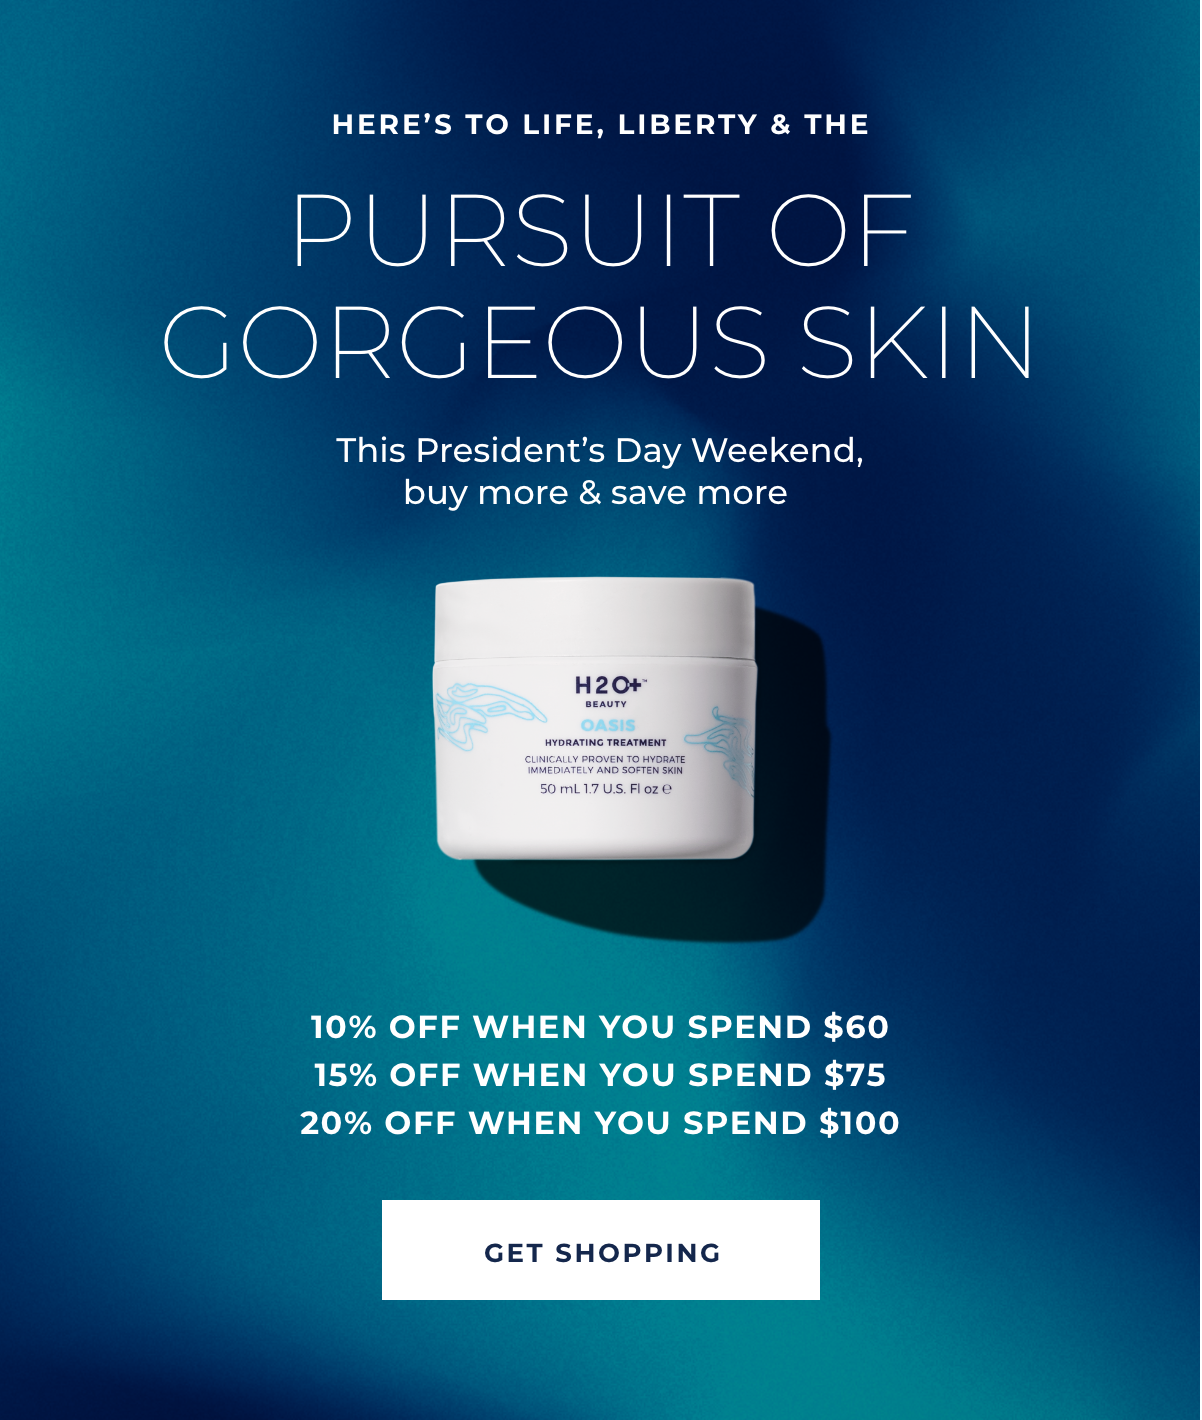 Here's to Life, Liberty & the Pursuit of Gorgeous Skin - This President's Day Weekend, buy more & save more - 10% off when you spend $60, 15% off when you spend $75, 20% off when you spend $100 - GET SHOPPING